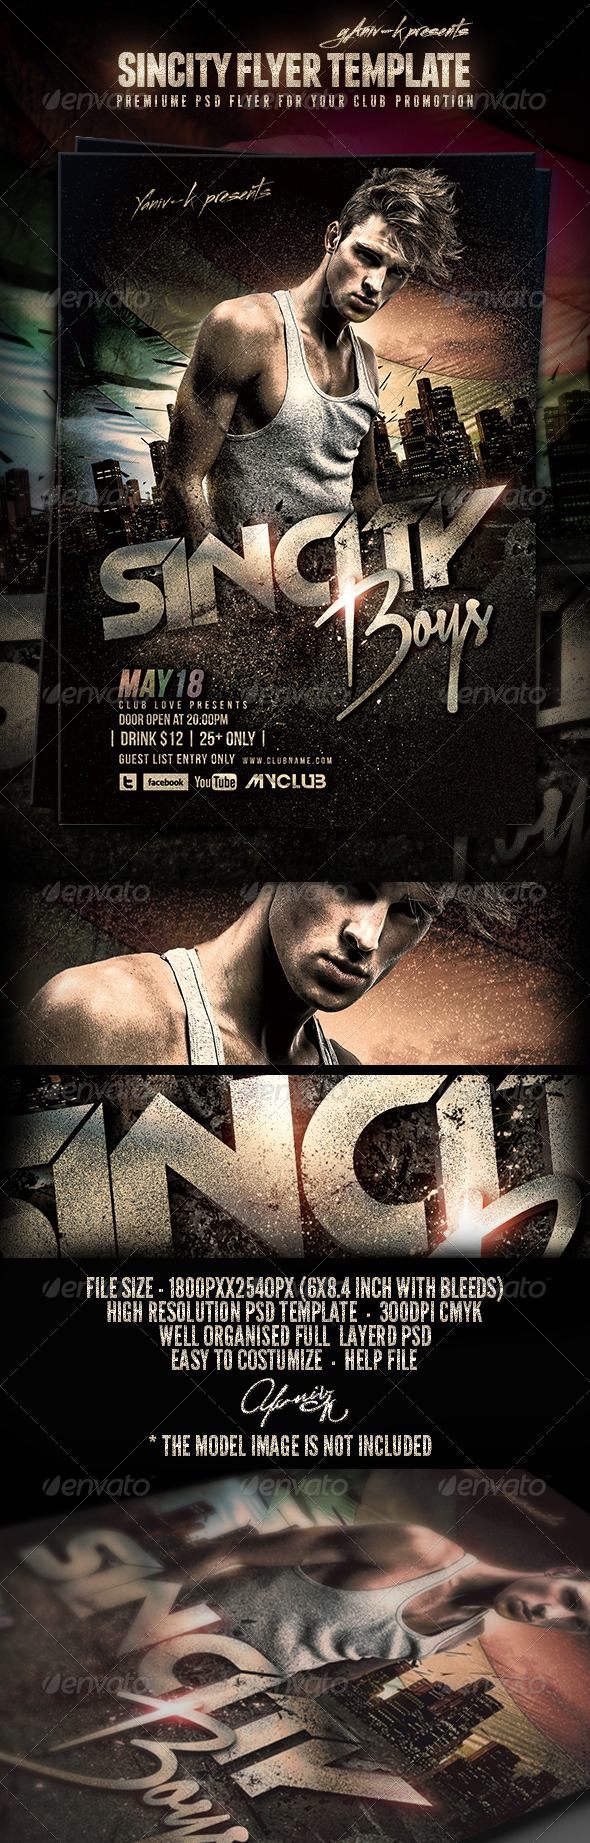 SinCity Flyer Template - Flyers Print Templates